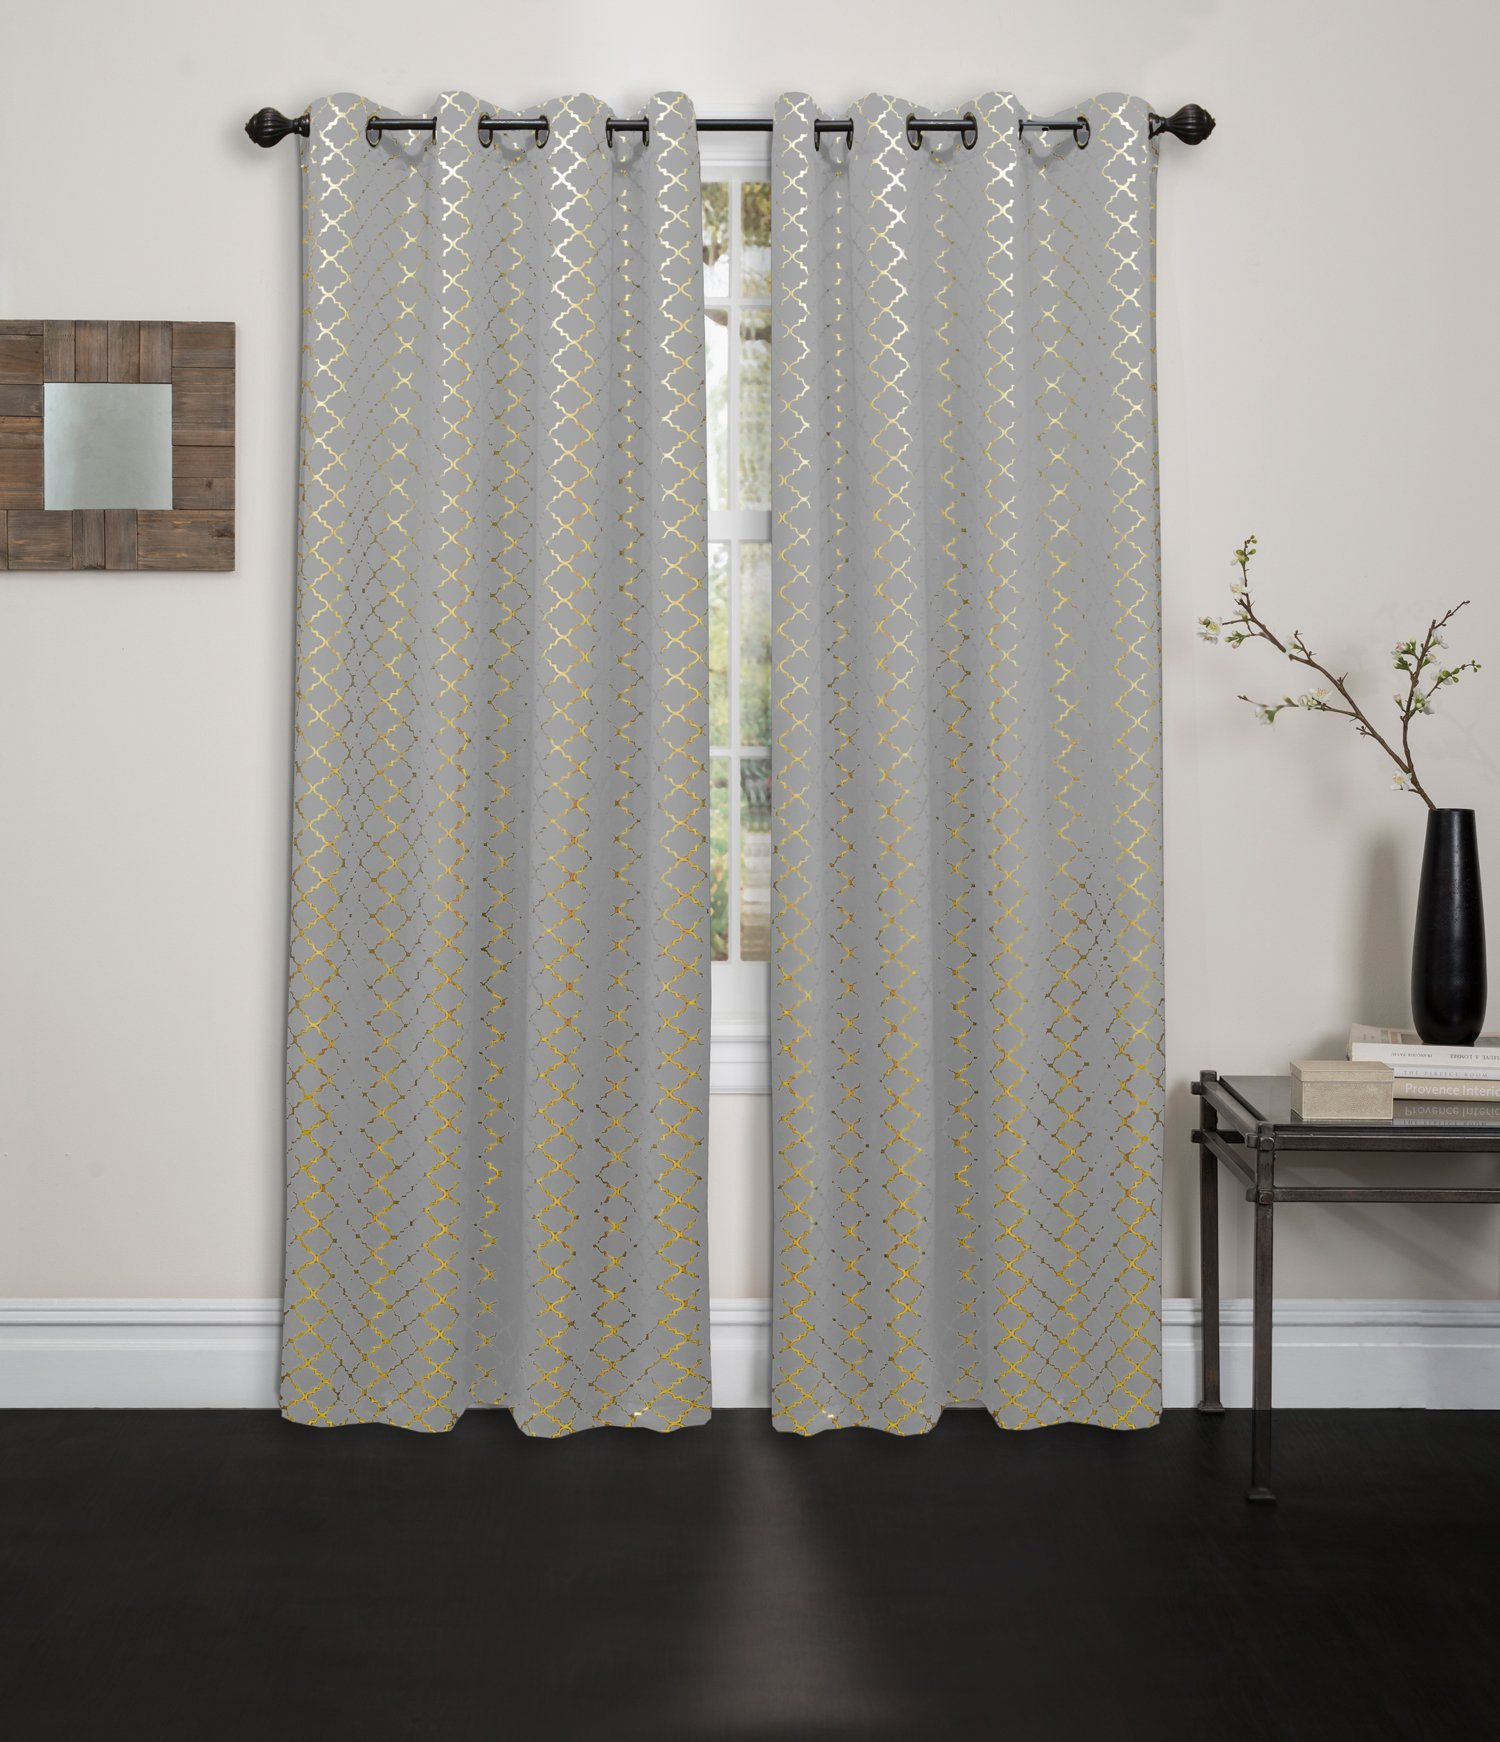 Kashi Home Natalie Printed 54X84 Grommet Blackout Curtain, Cloud/Gold - Perfect Size: the printed blackout curtain measures 54L x 84W Durably Made: this 54x84 grommet curtain is light weight material Made from 100Percent polyester Versatile: this grommet blackout curtains are ideal curtains for bedroom, living room, kitchen, kids room and so on - living-room-soft-furnishings, living-room, draperies-curtains-shades - 81JqjlF2TIL -